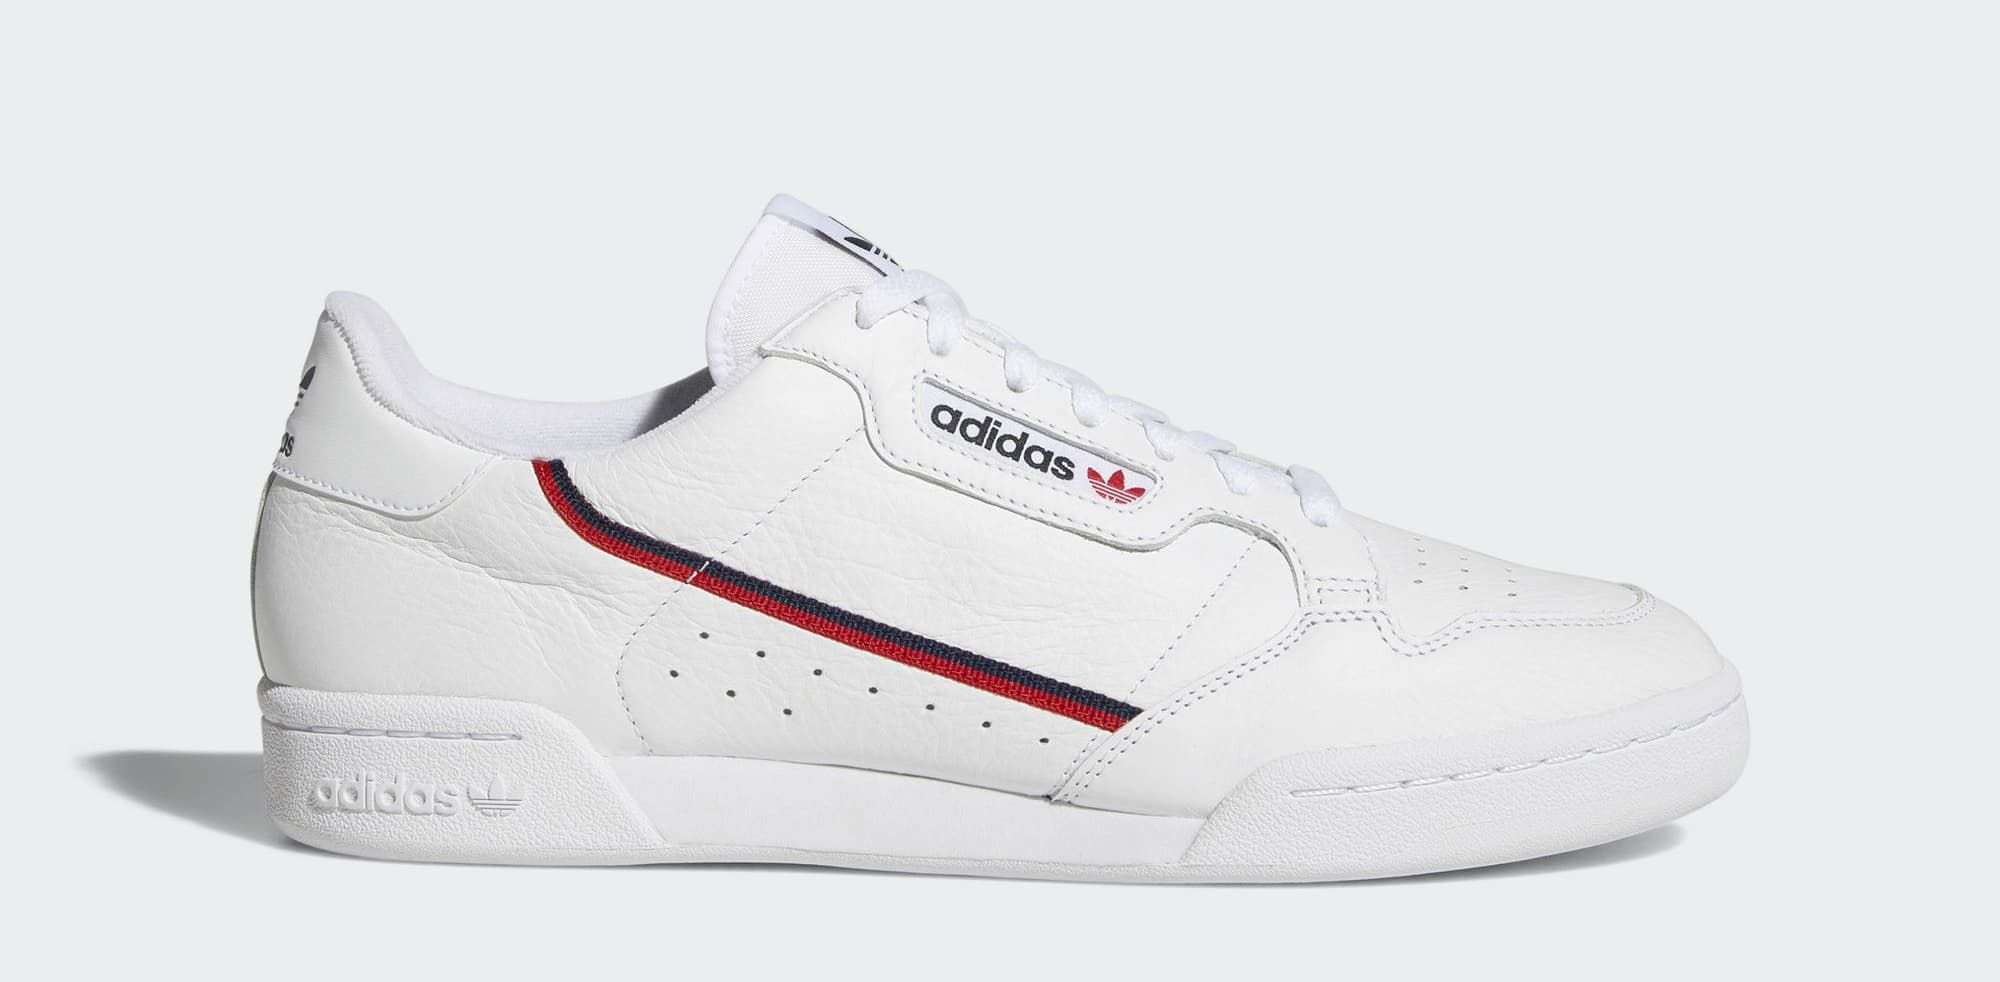 The Next Best Thing to the Adidas Yeezy Powerphase ...